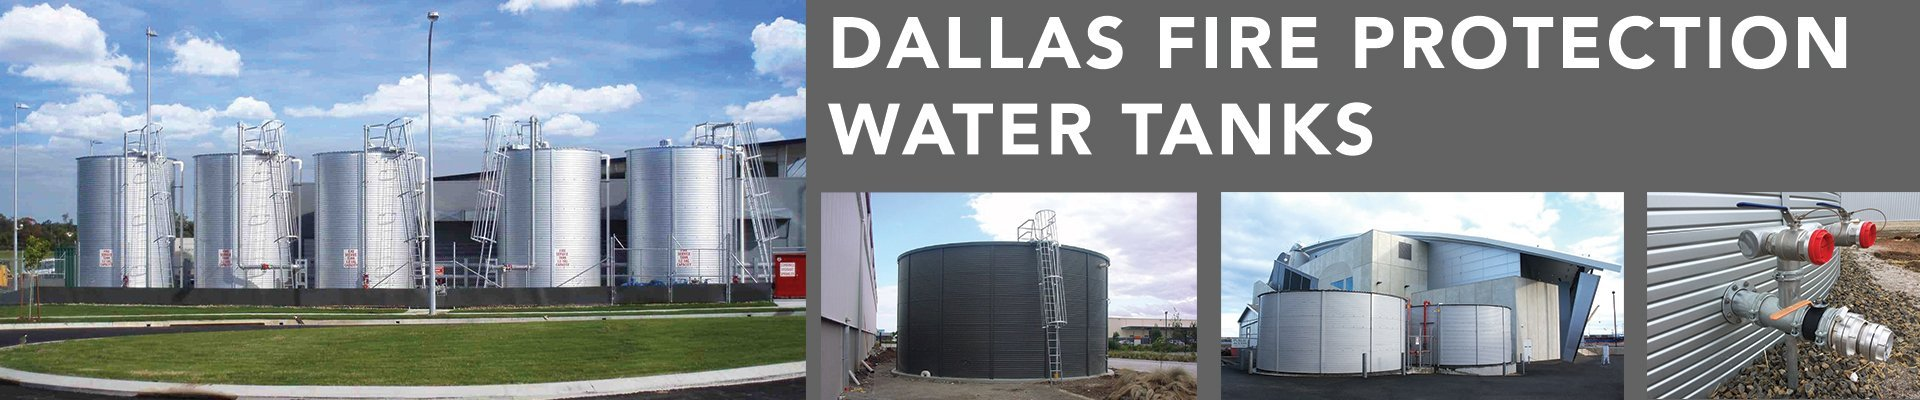 Dallas Fire Protection Water Tanks